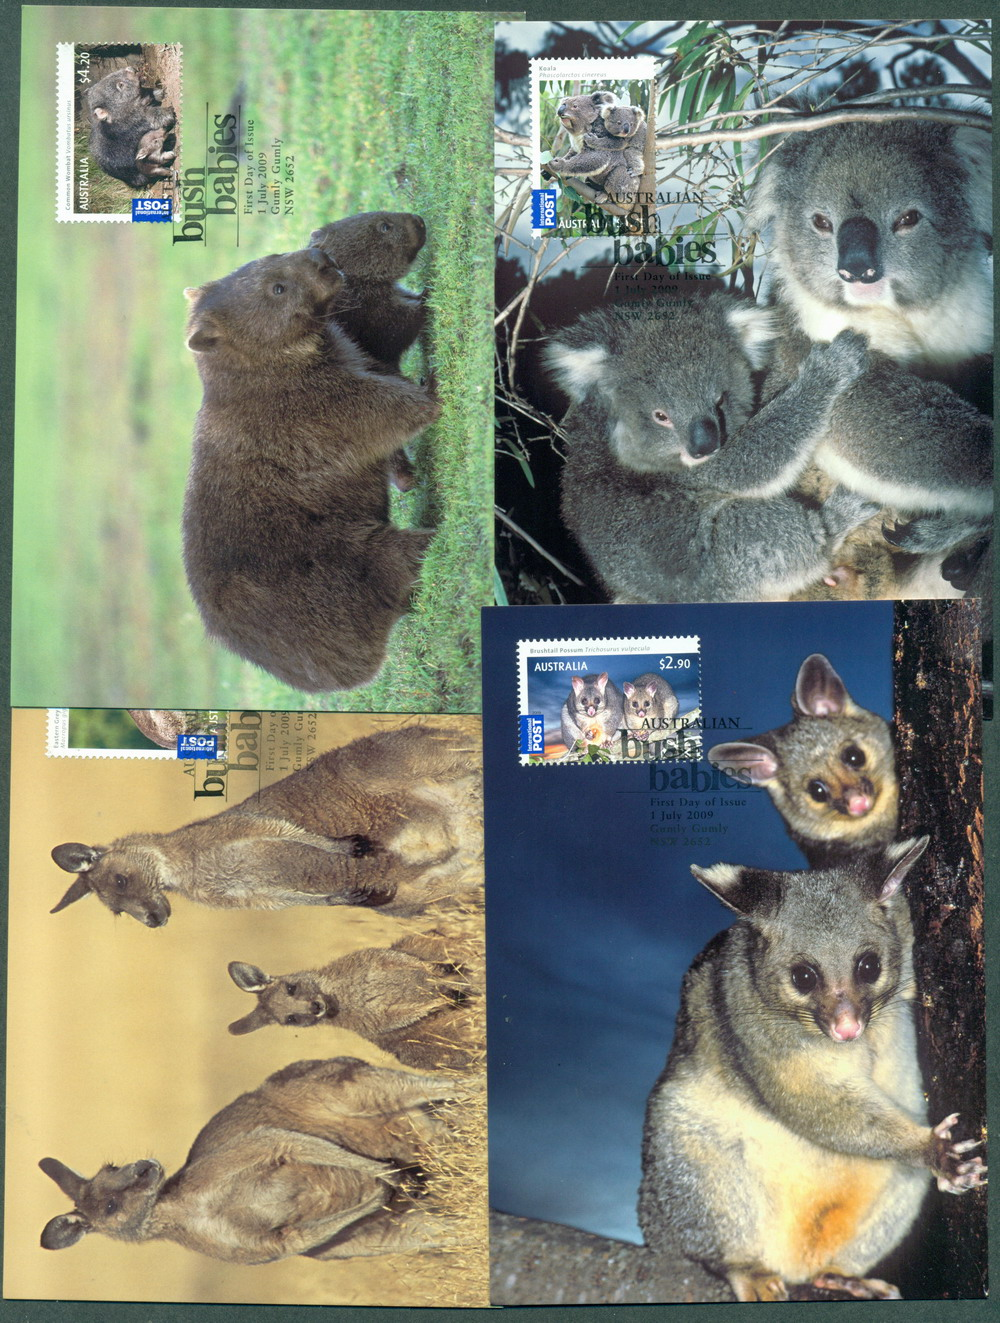 Australia 2009 Bush Babies Maxi cards Lot27885